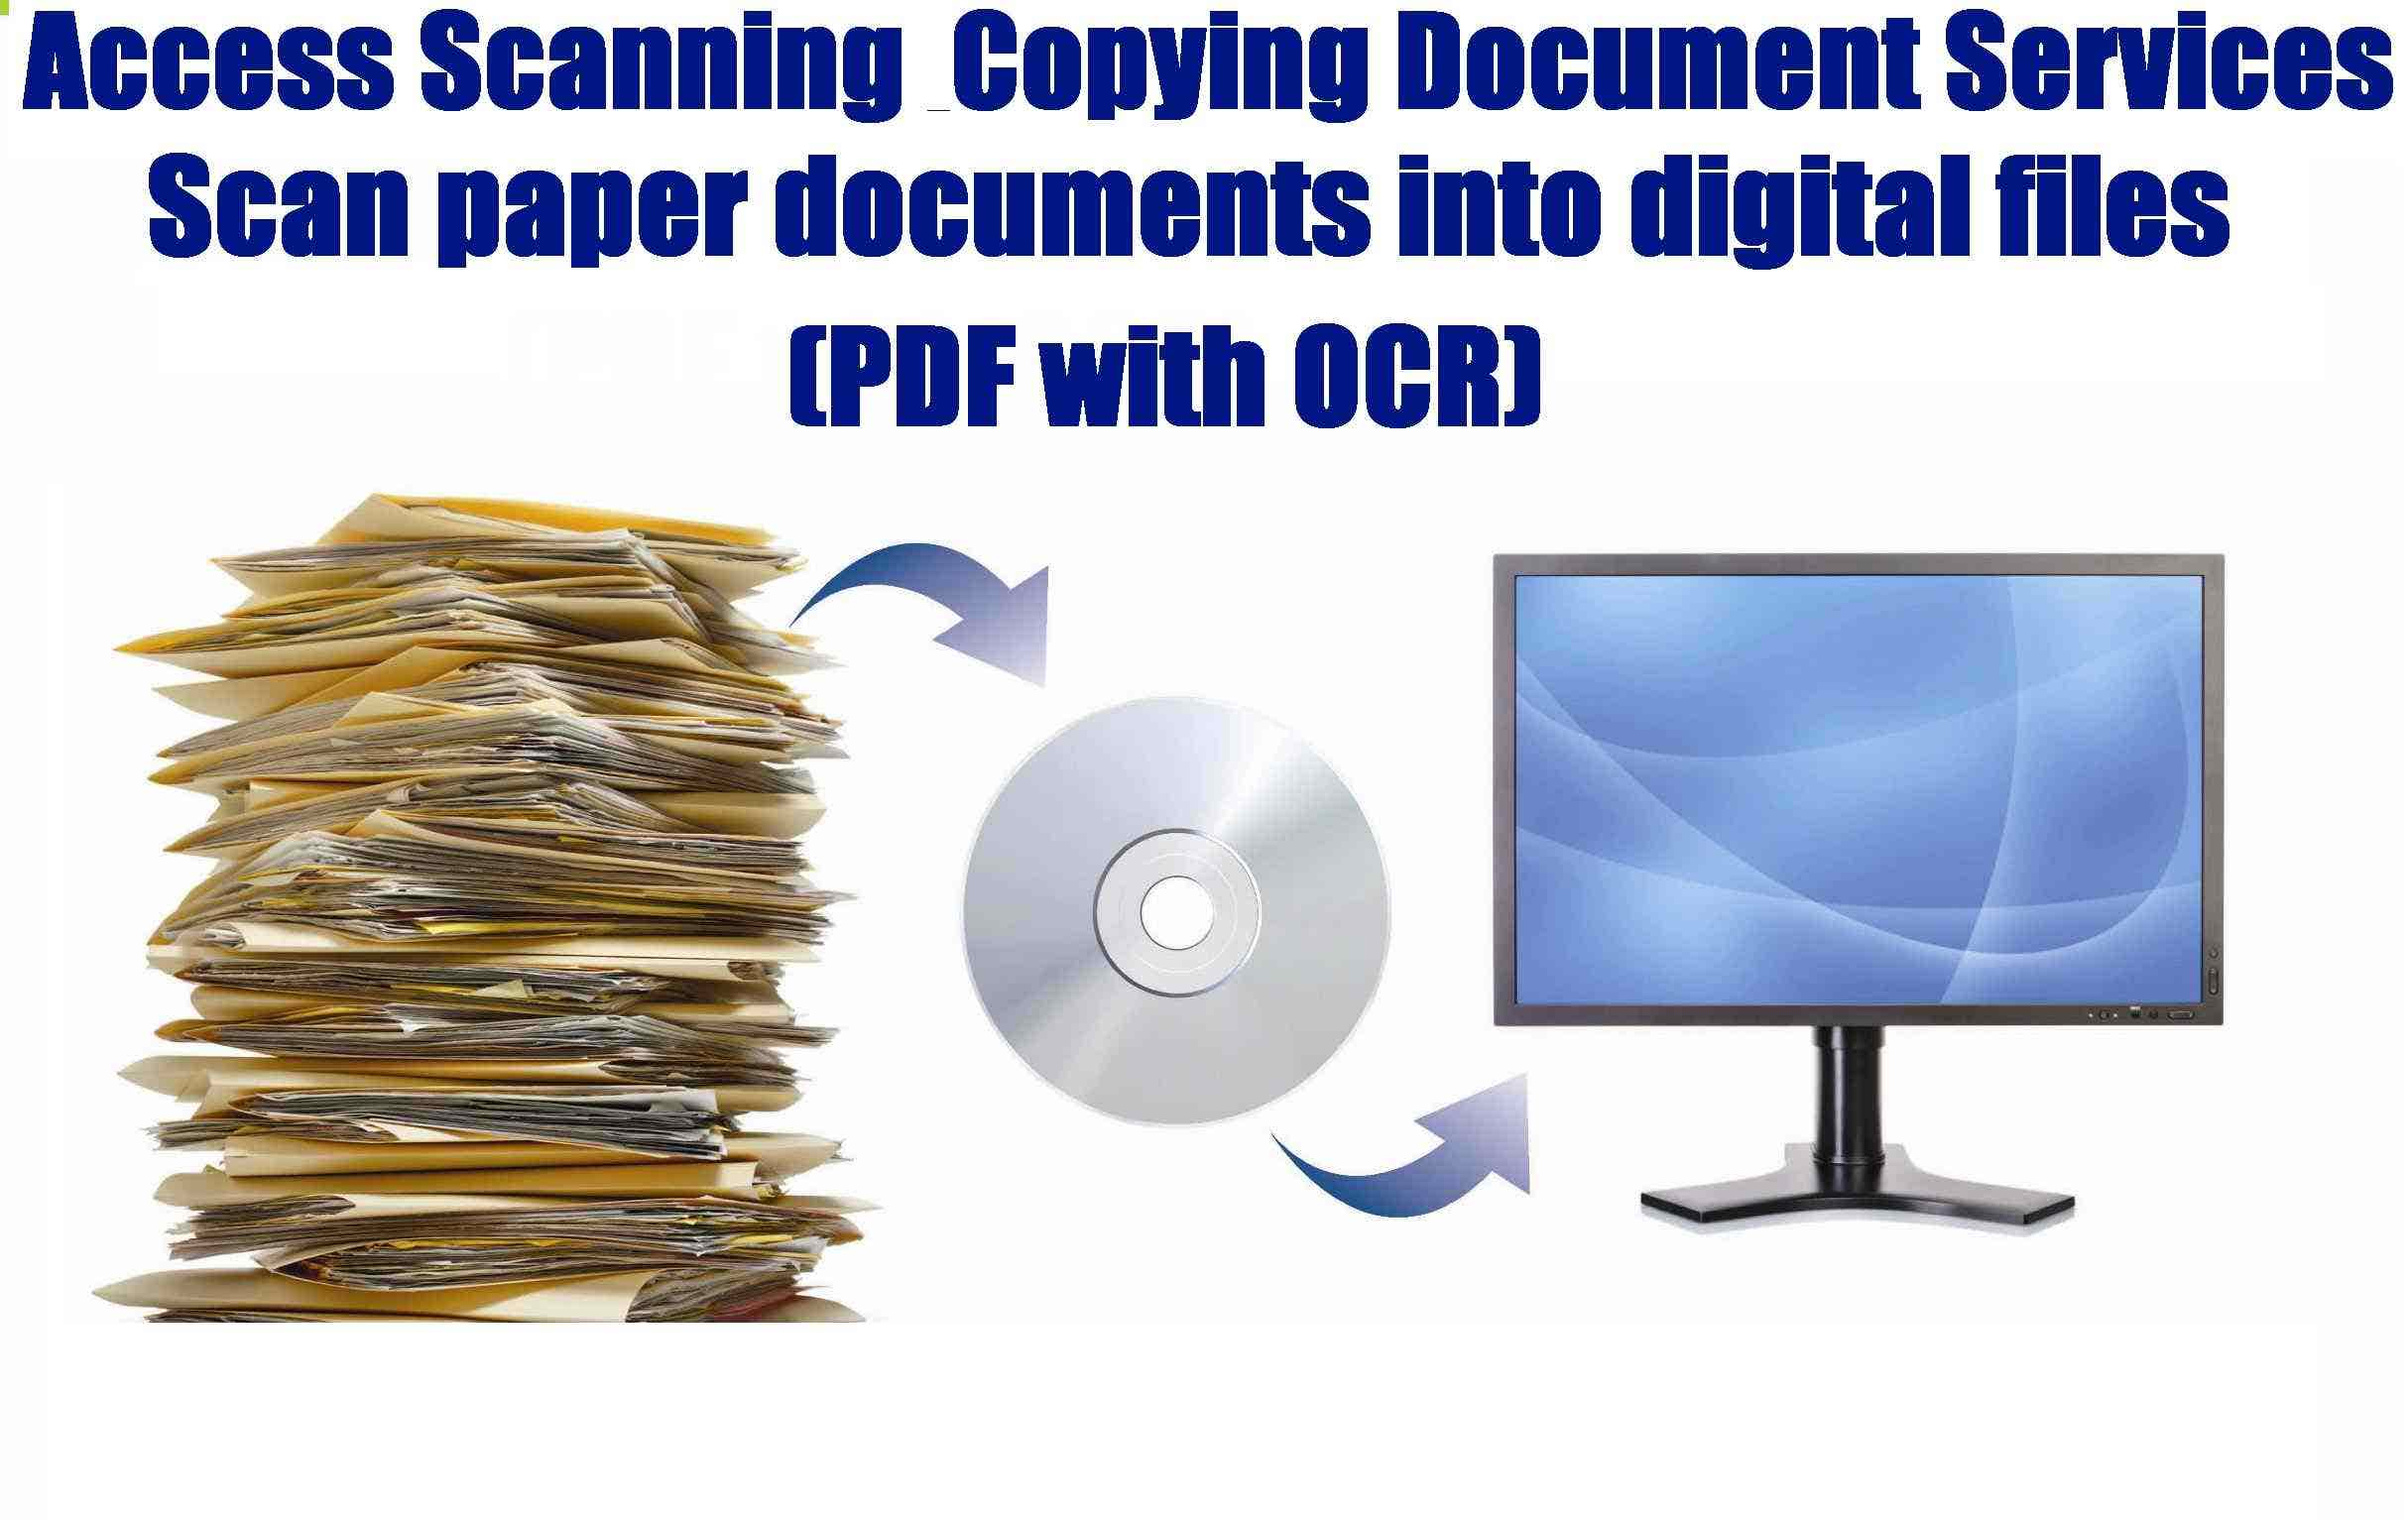 Scanning Document Services